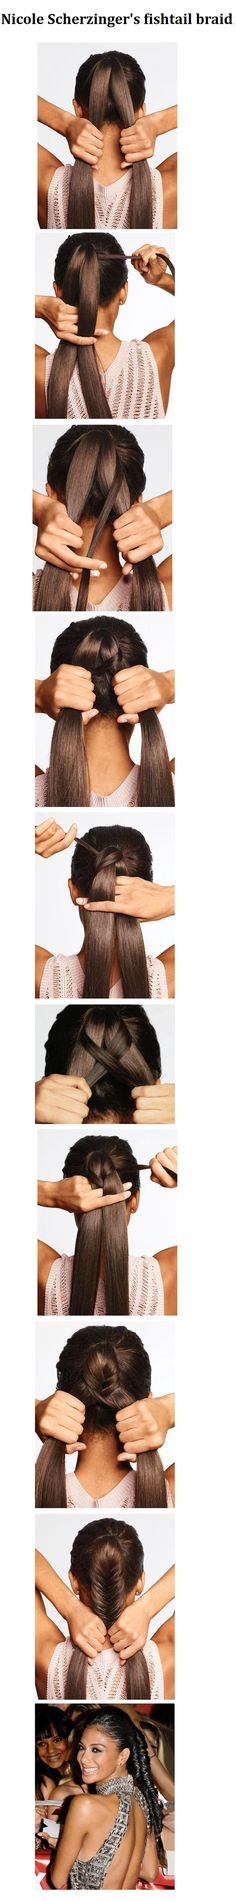 Nicole Scherzinger's fishtail braid | Hairstyles and Beauty Tips.  This explains better how to do this braid. Plus it shows how to do it yourself.